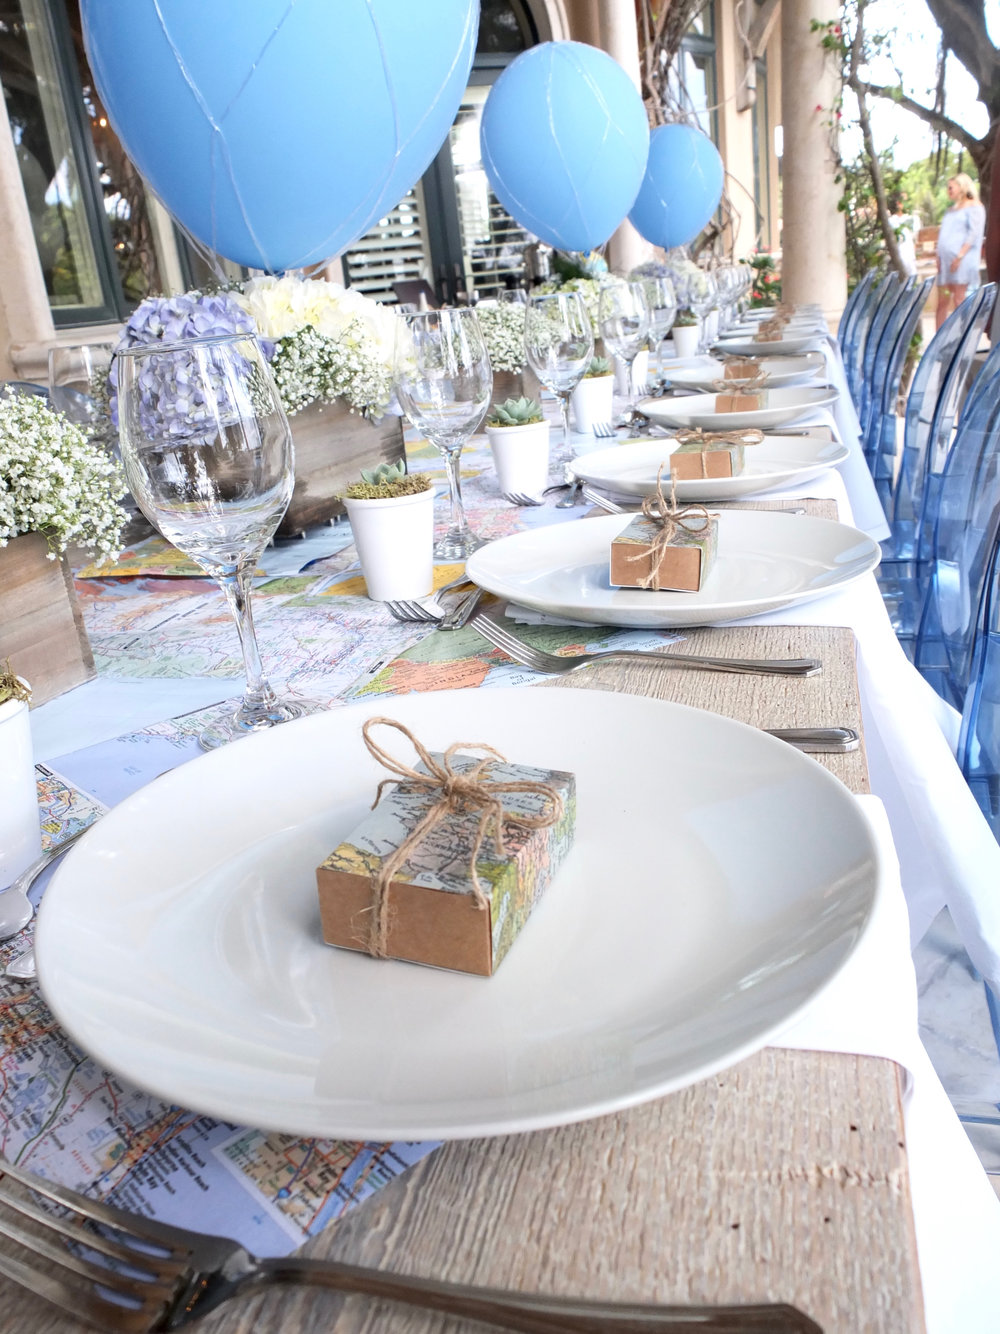 Arrangements of pale blue hydrangeas and Baby Breath, in small wooden crates from Unearthed Vintage, were the table centerpieces, along with blue balloons styled as hot-air balloons for the travel theme. The tables are made from 100 year-old reclaimed pine. [Photos: Nicky Monteiro]